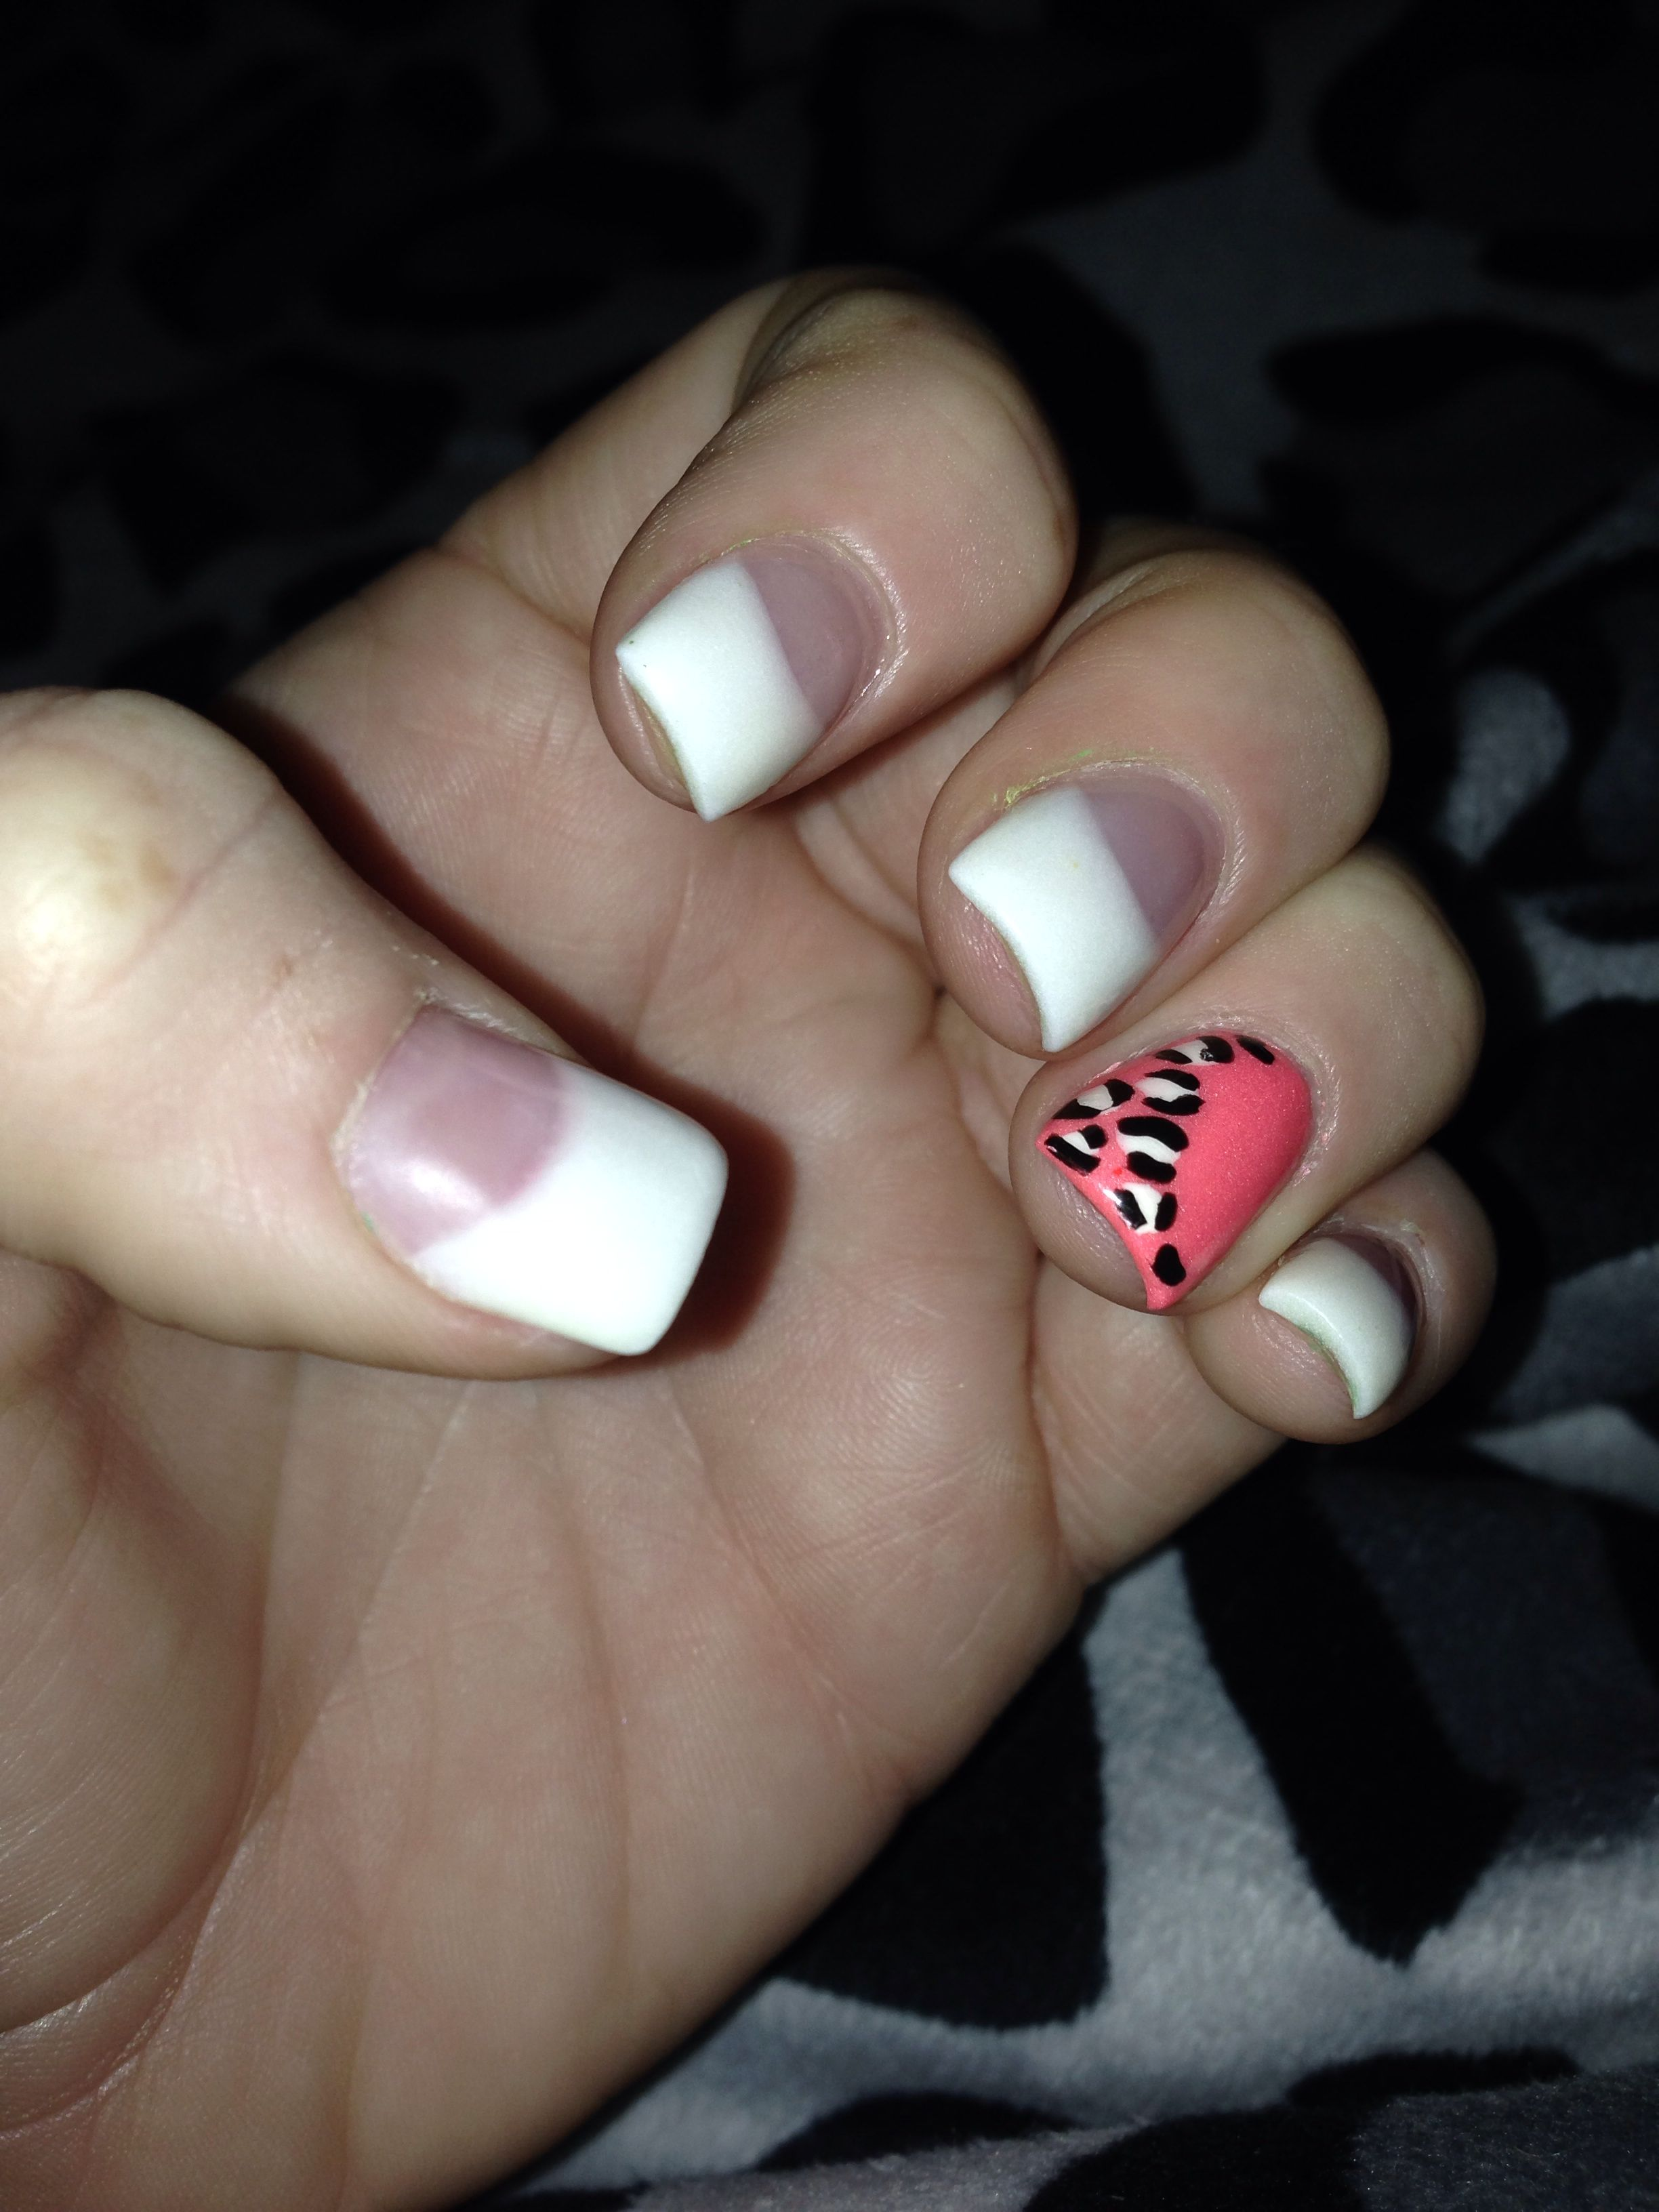 Maybe black nails with a similar accent